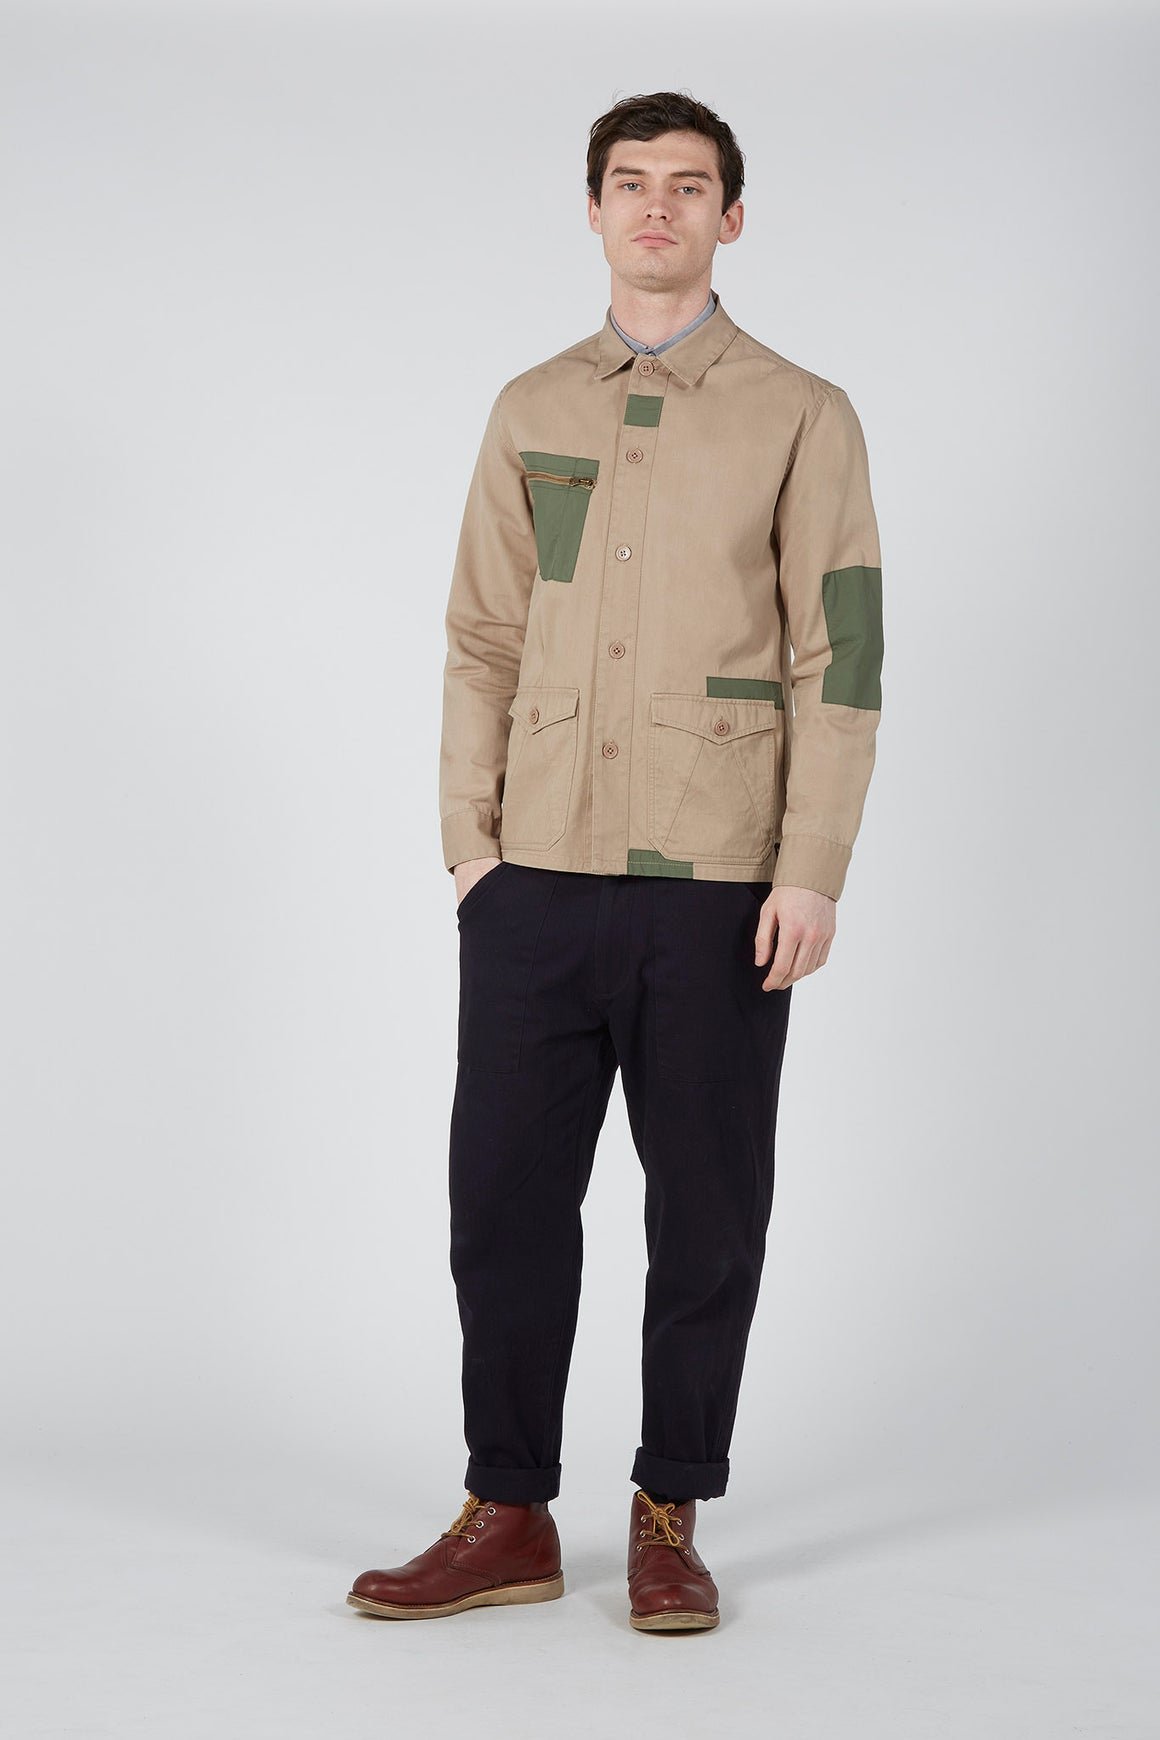 Desert Patched Overshirt | Stone/Green - issue #RE0372